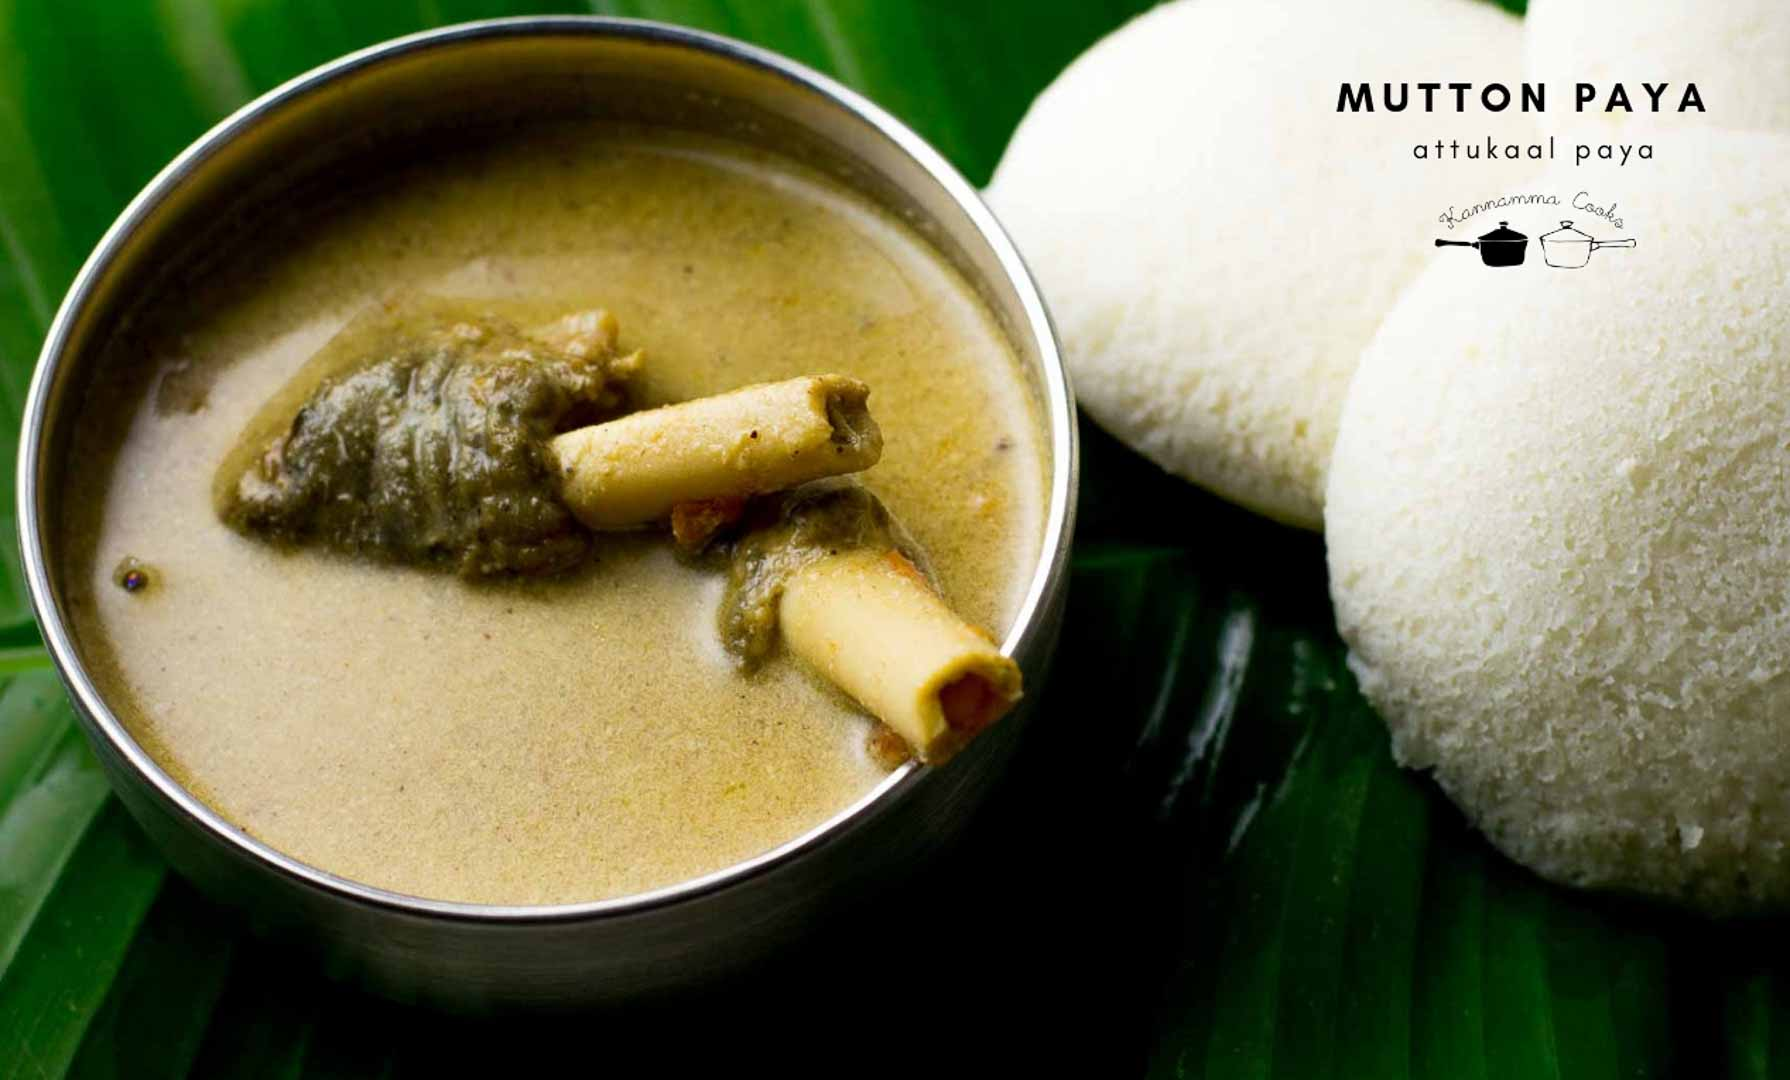 aatukal-paya-mutton-paya-recipe-1-9